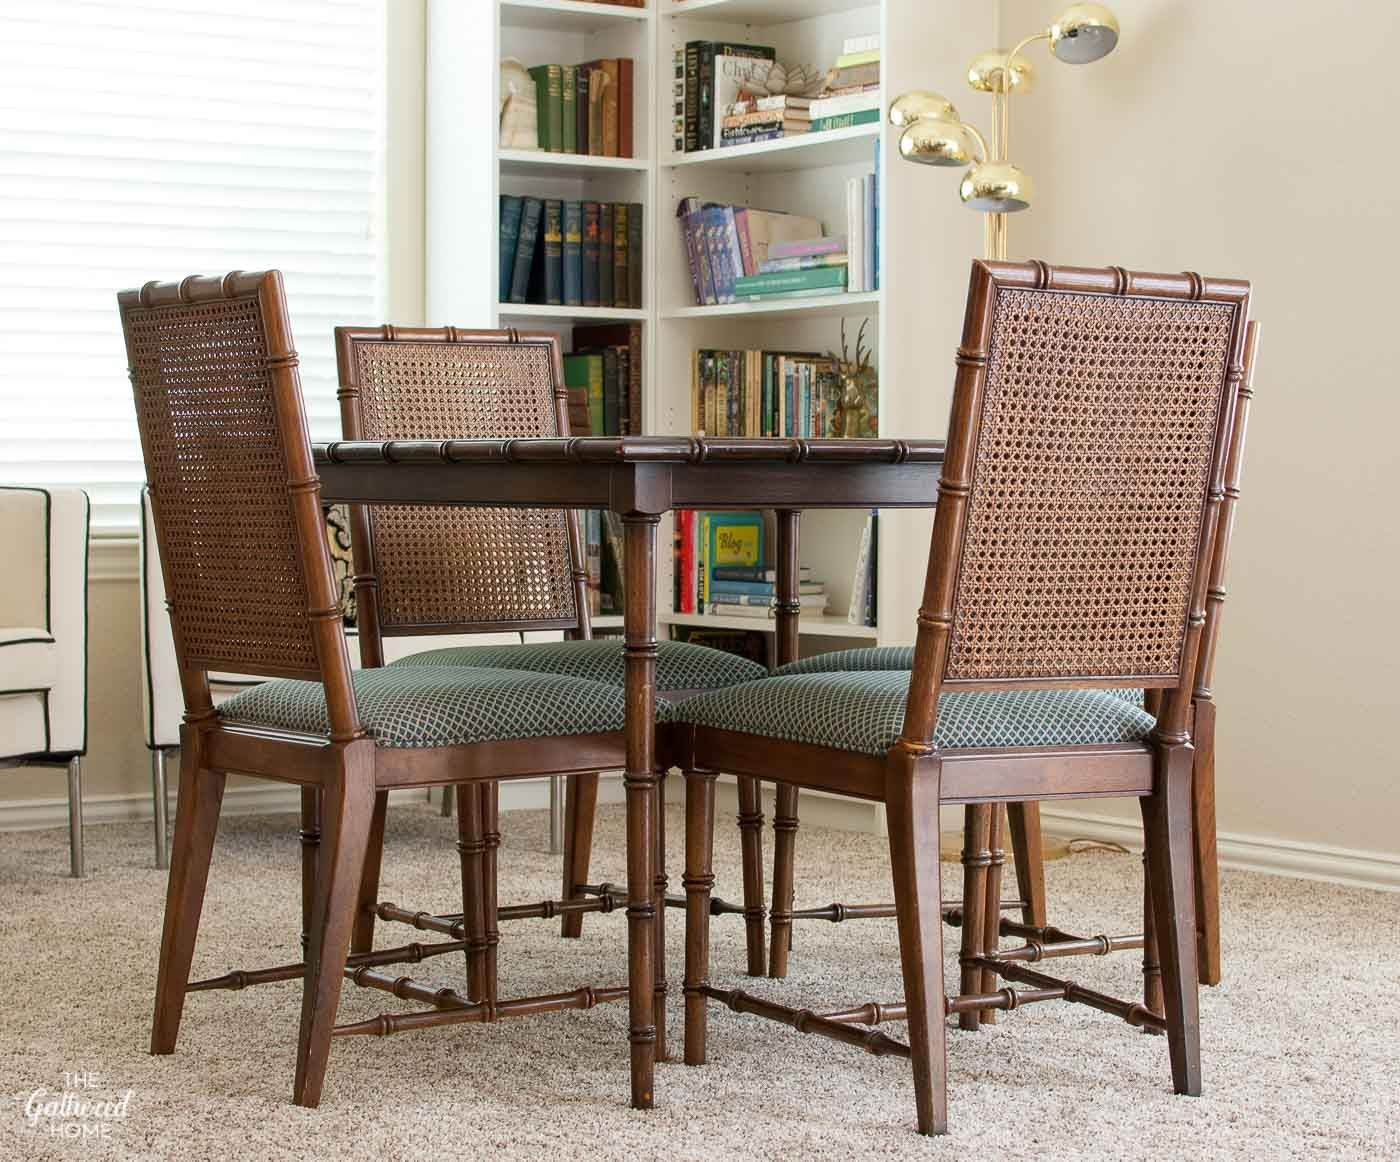 How To Fix A Sagging Dining Chair Seat Home Improvement